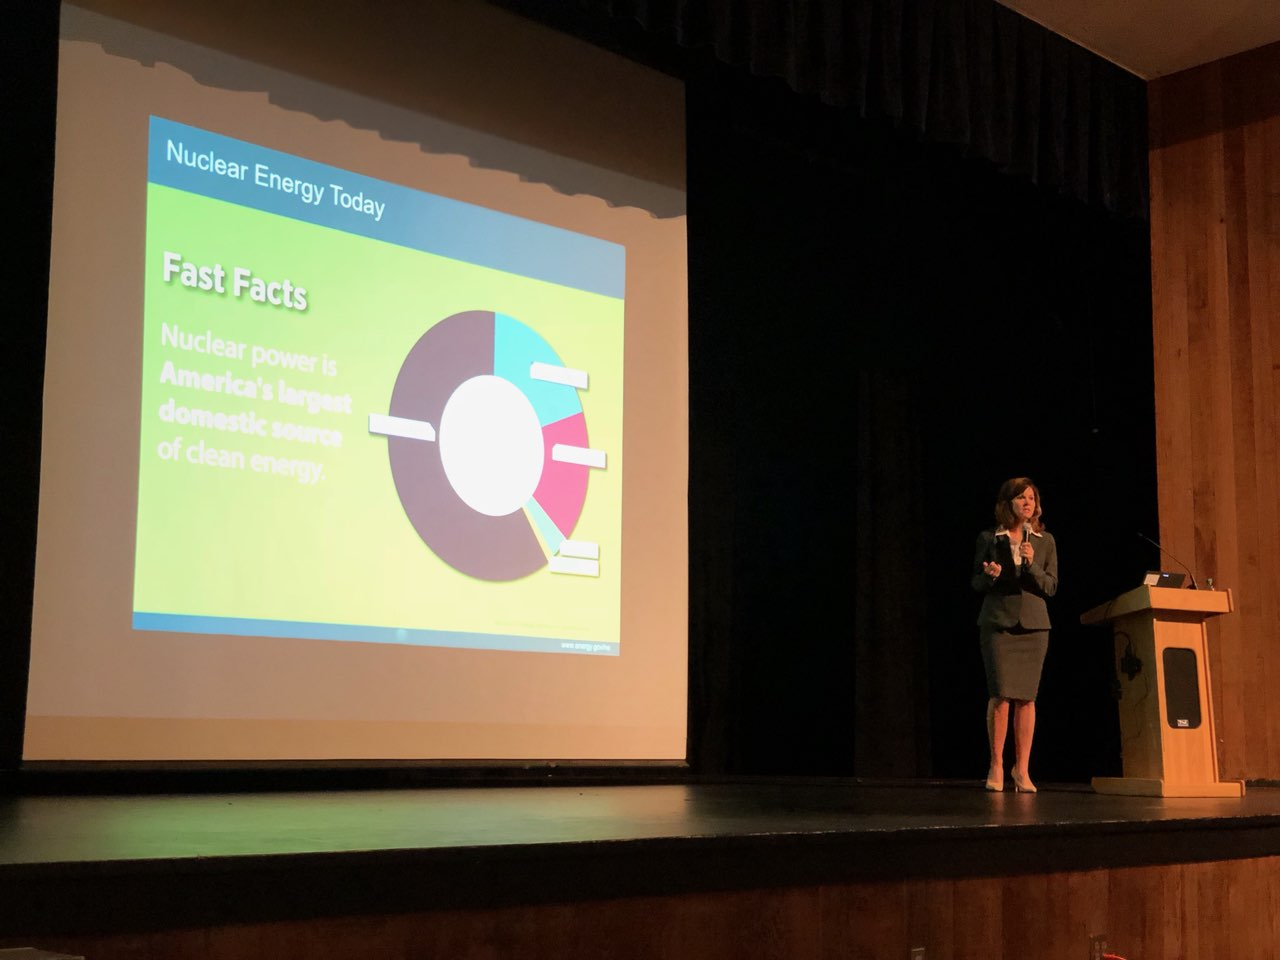 AHS alumna Suzanne Jaworowski talks to students about the use of nuclear energy today